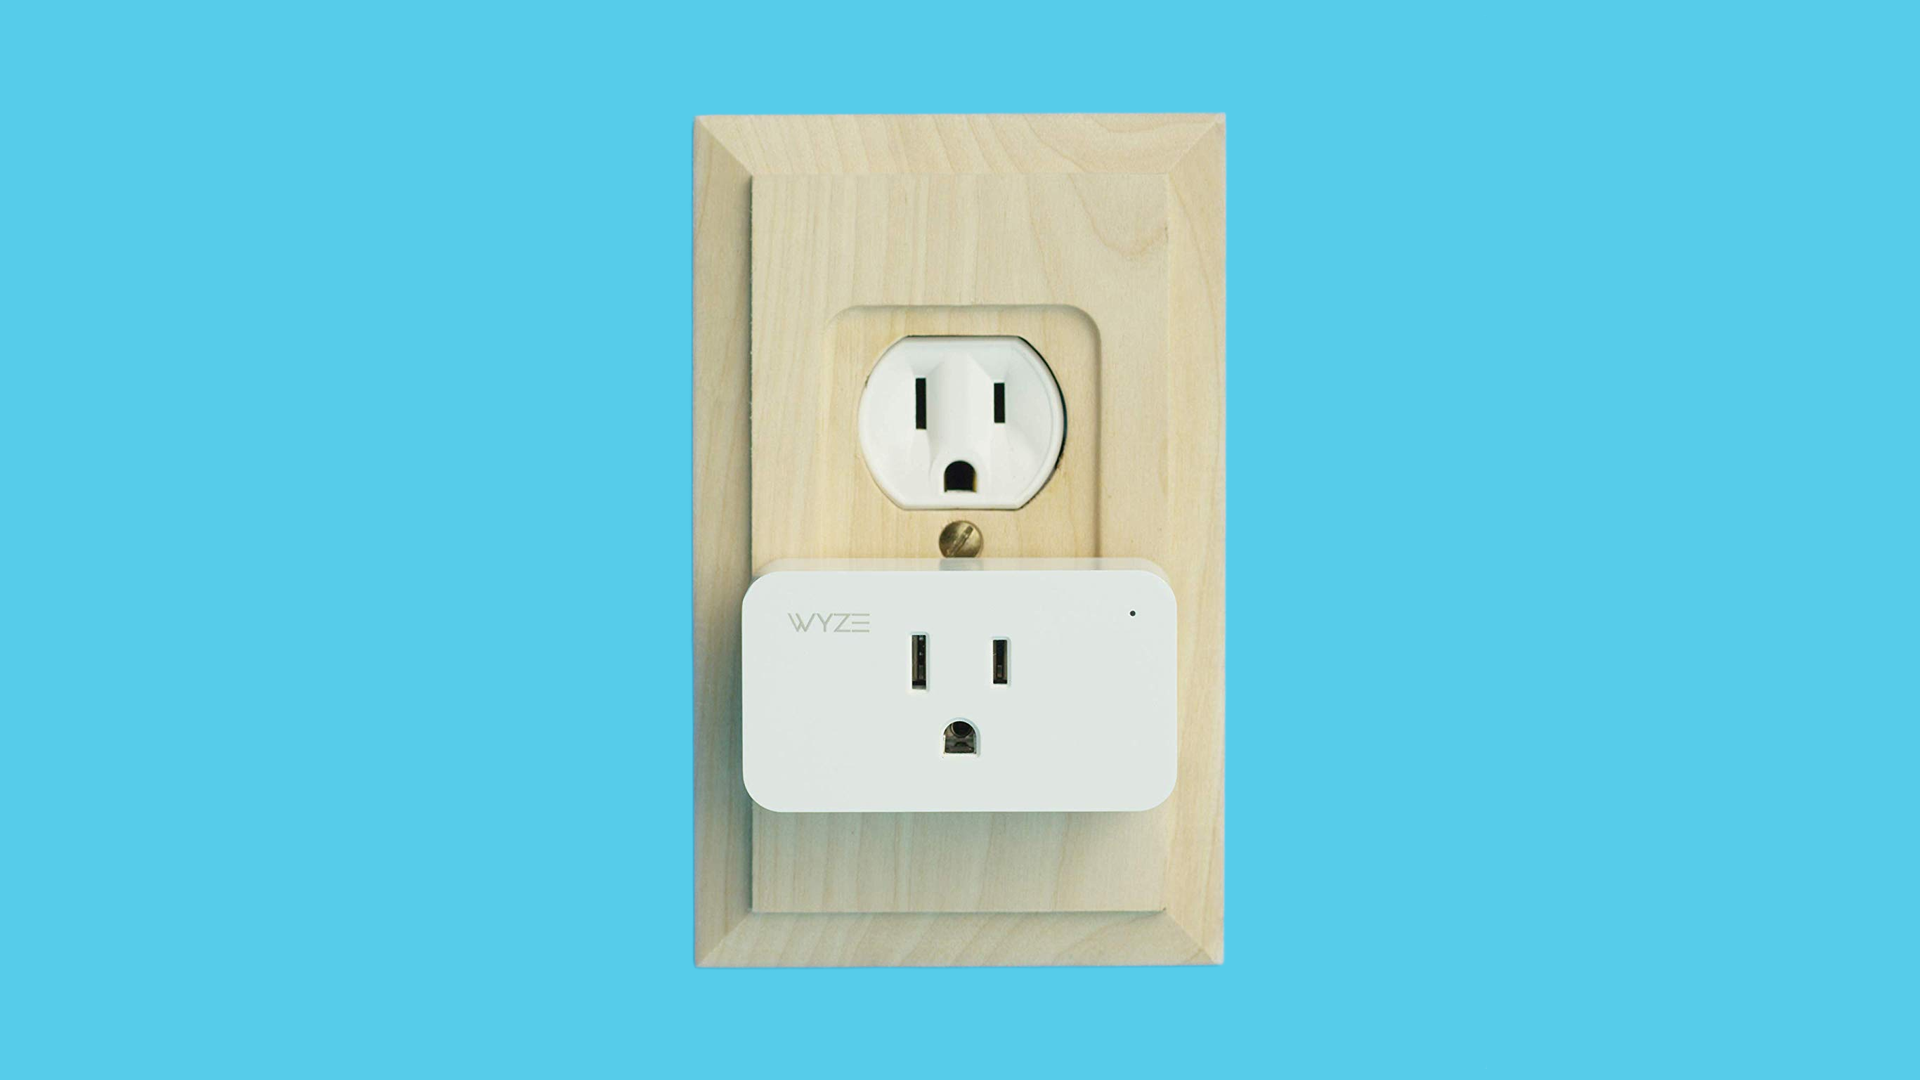 A Wyze smart plug in a socket with a wooden coverplate.